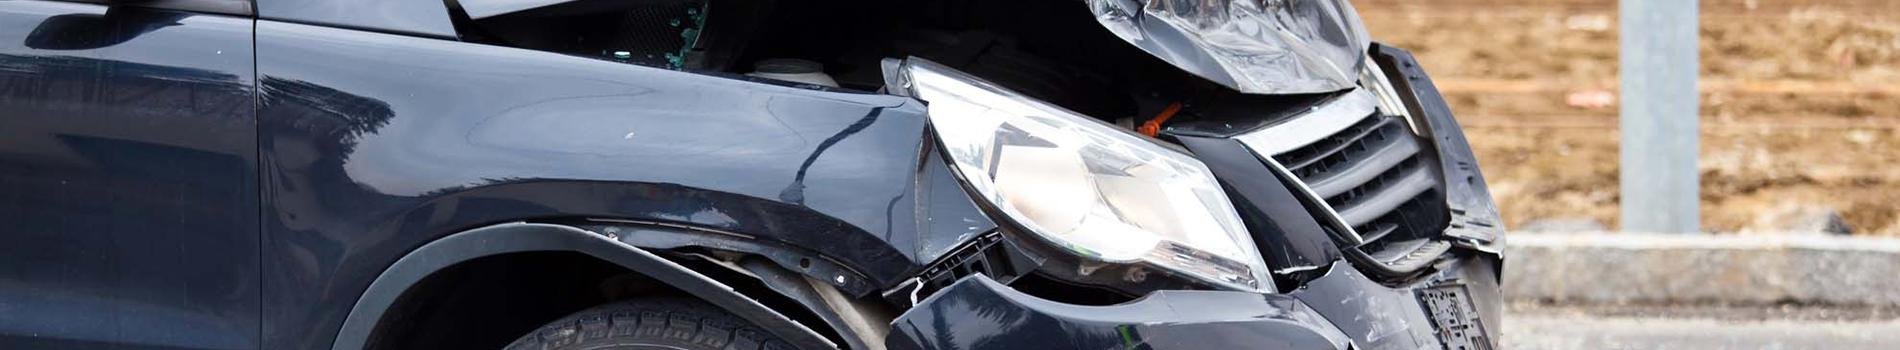 Auto Body Repair in Canoga Park, CA